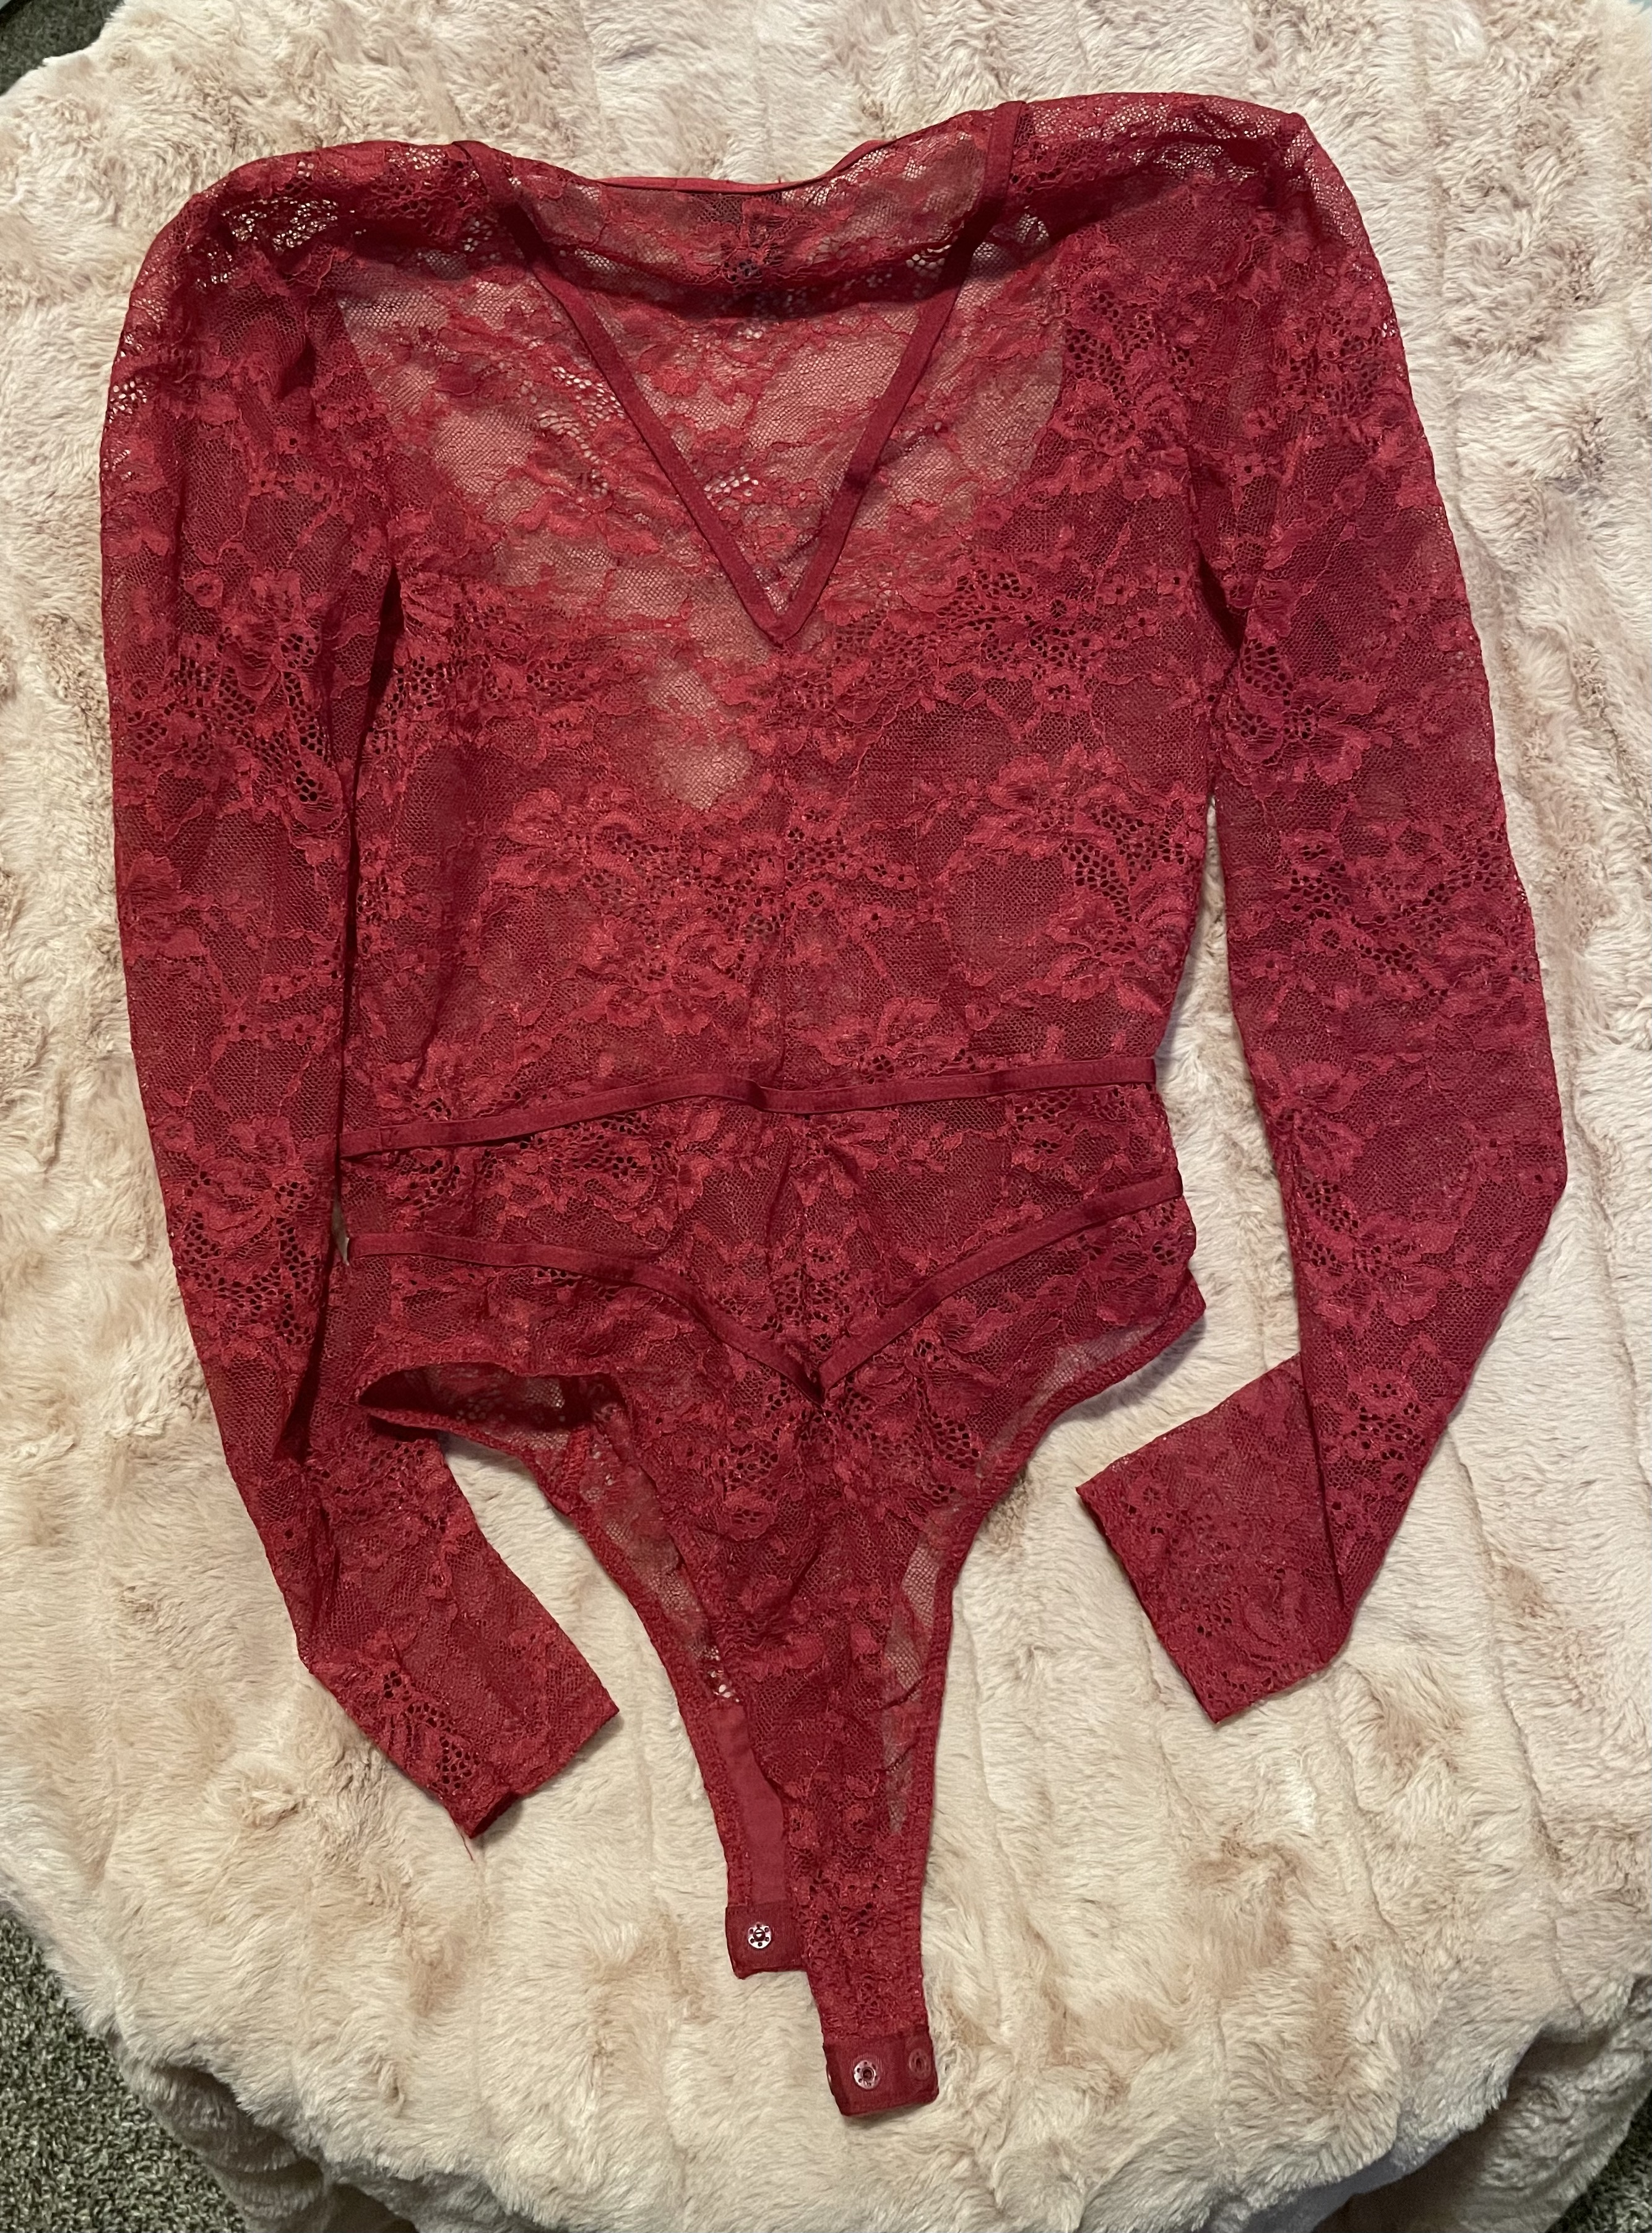 Victorias Secret   VS Lingerie Lace Bodysuit Onesie   Buttons At Bottom   Revealing V Neck   See Through Sheer Lace   Women's Small